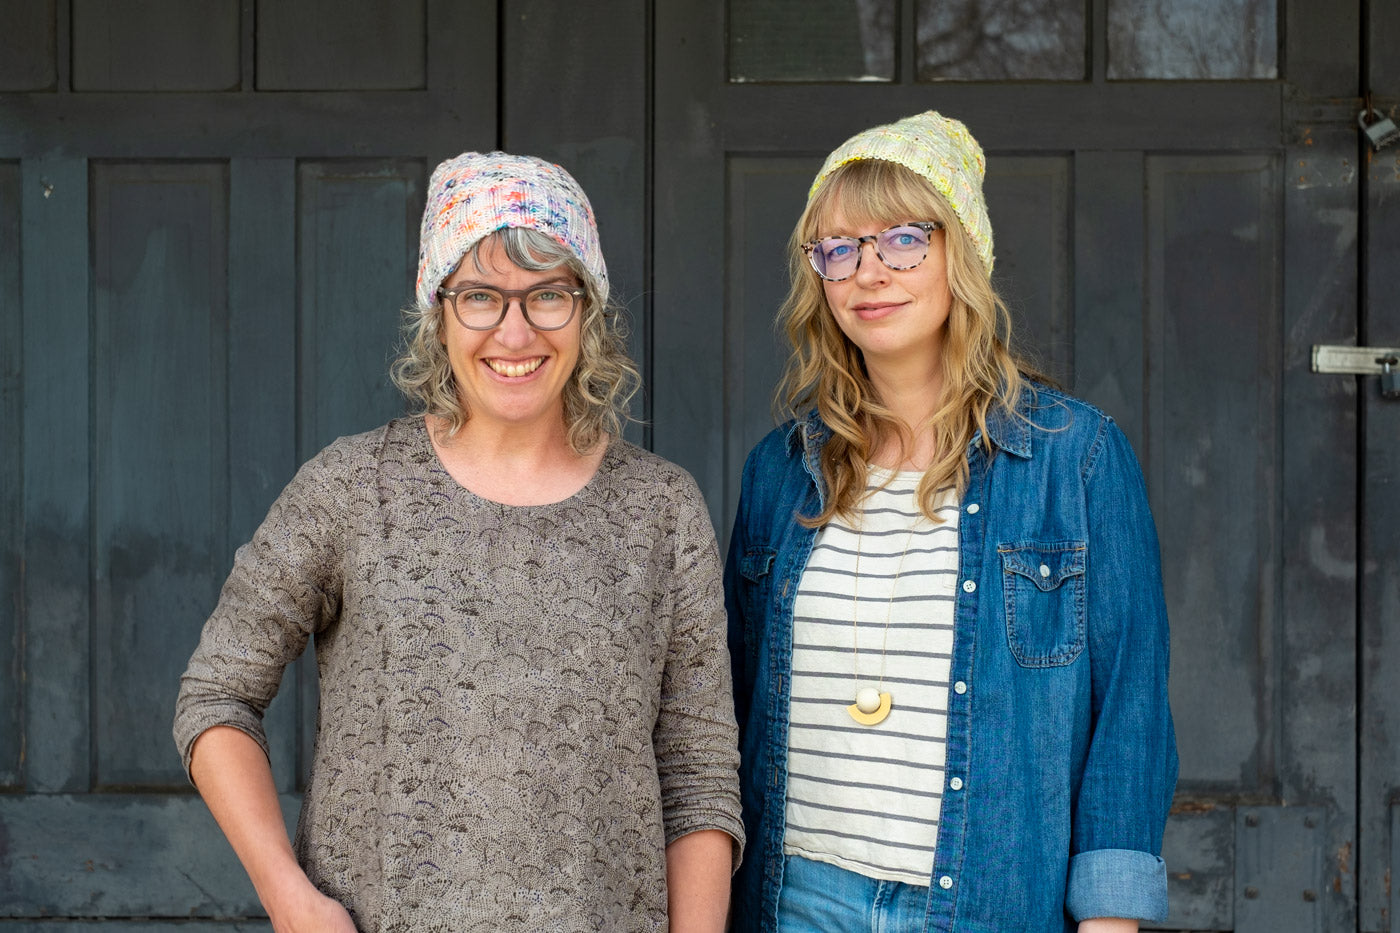 Jaime and Amber standing together, both wear handknits hats that are white with neon speckles.